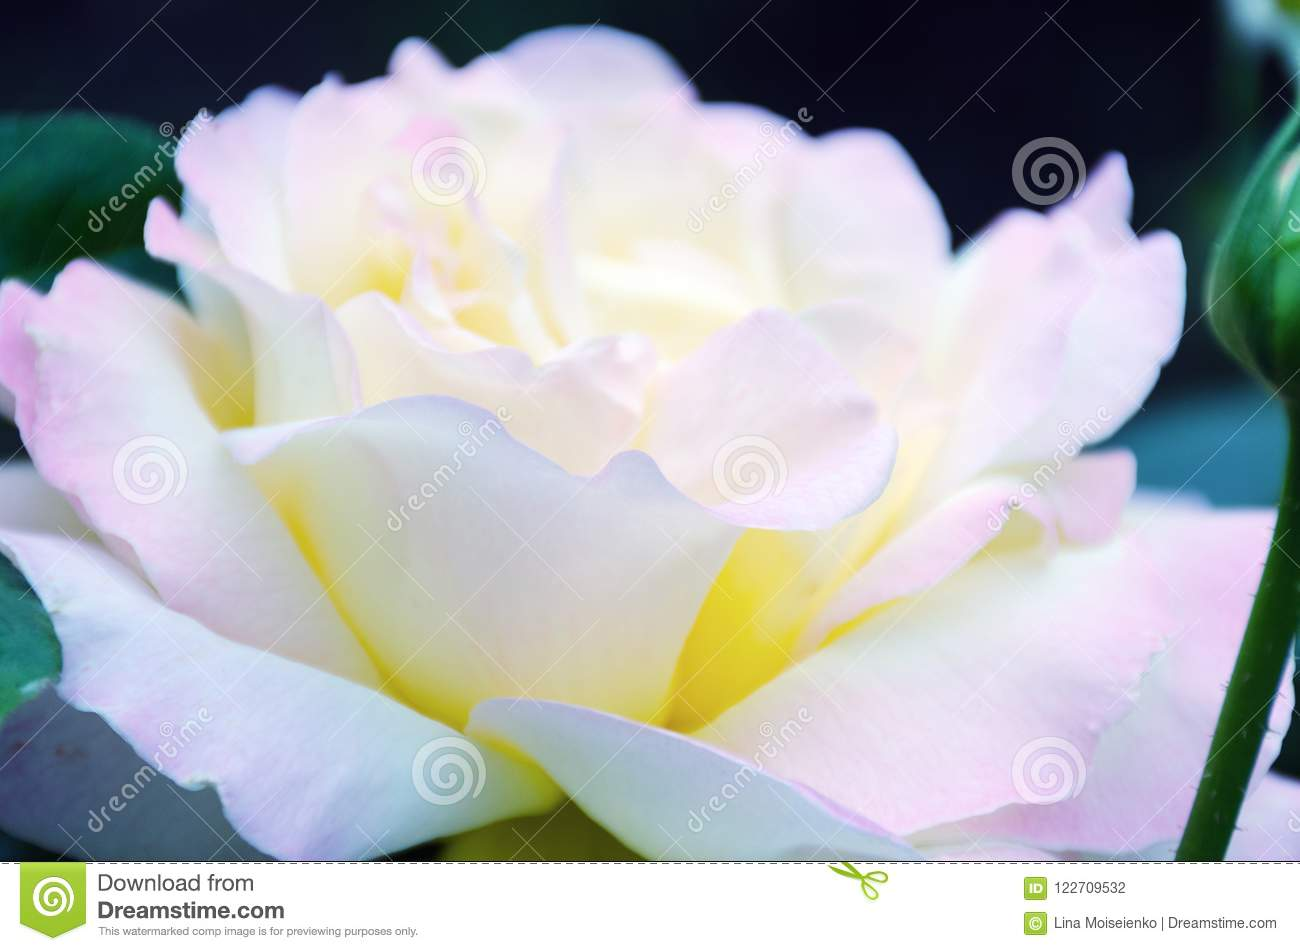 Image with shallow depth of focus - blooming pink rose, gentle petals close up.